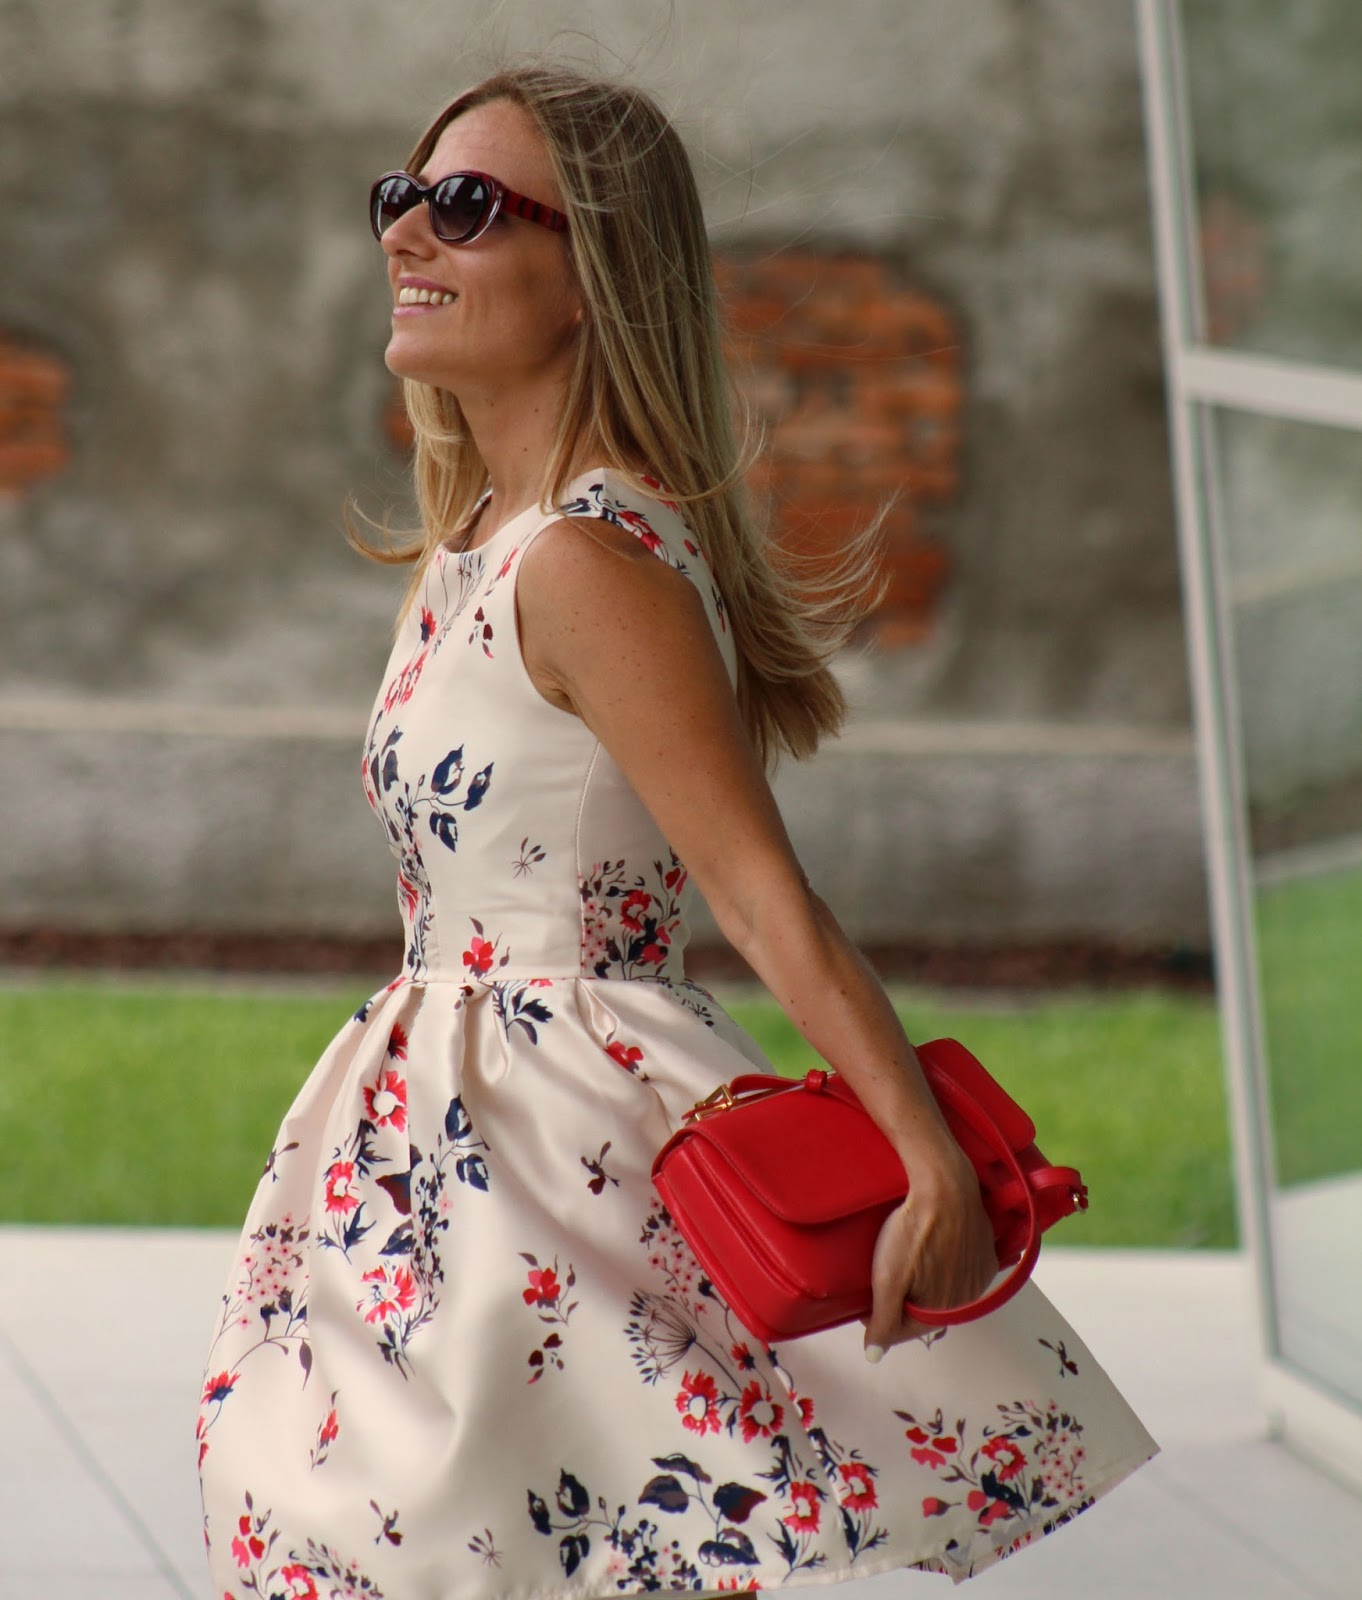 Eniwhere Fashion - Sammydress floral dress outfit